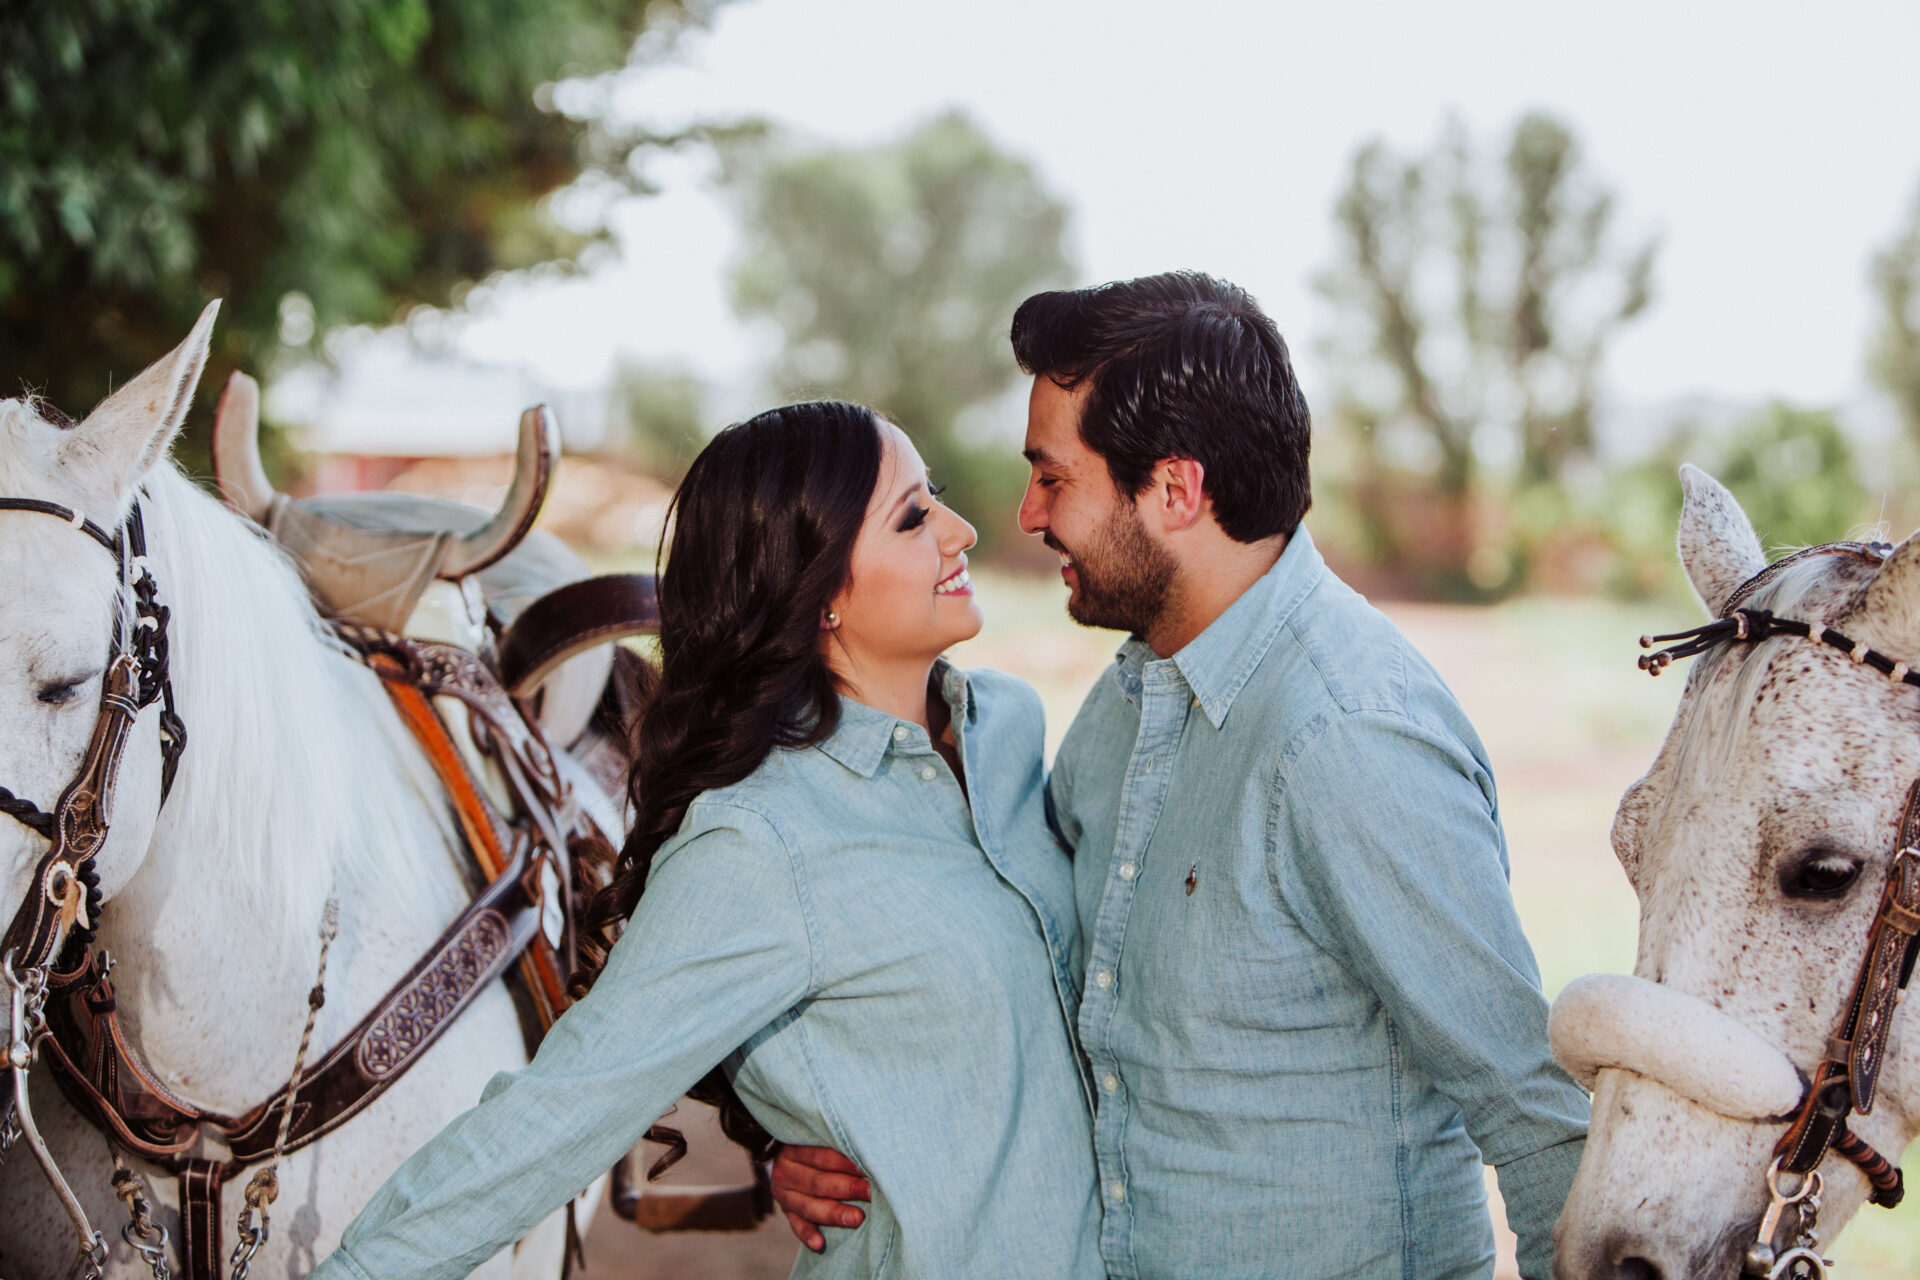 javier_noriega_fotografo_save_the_date_zacatecas_wedding_photographer3